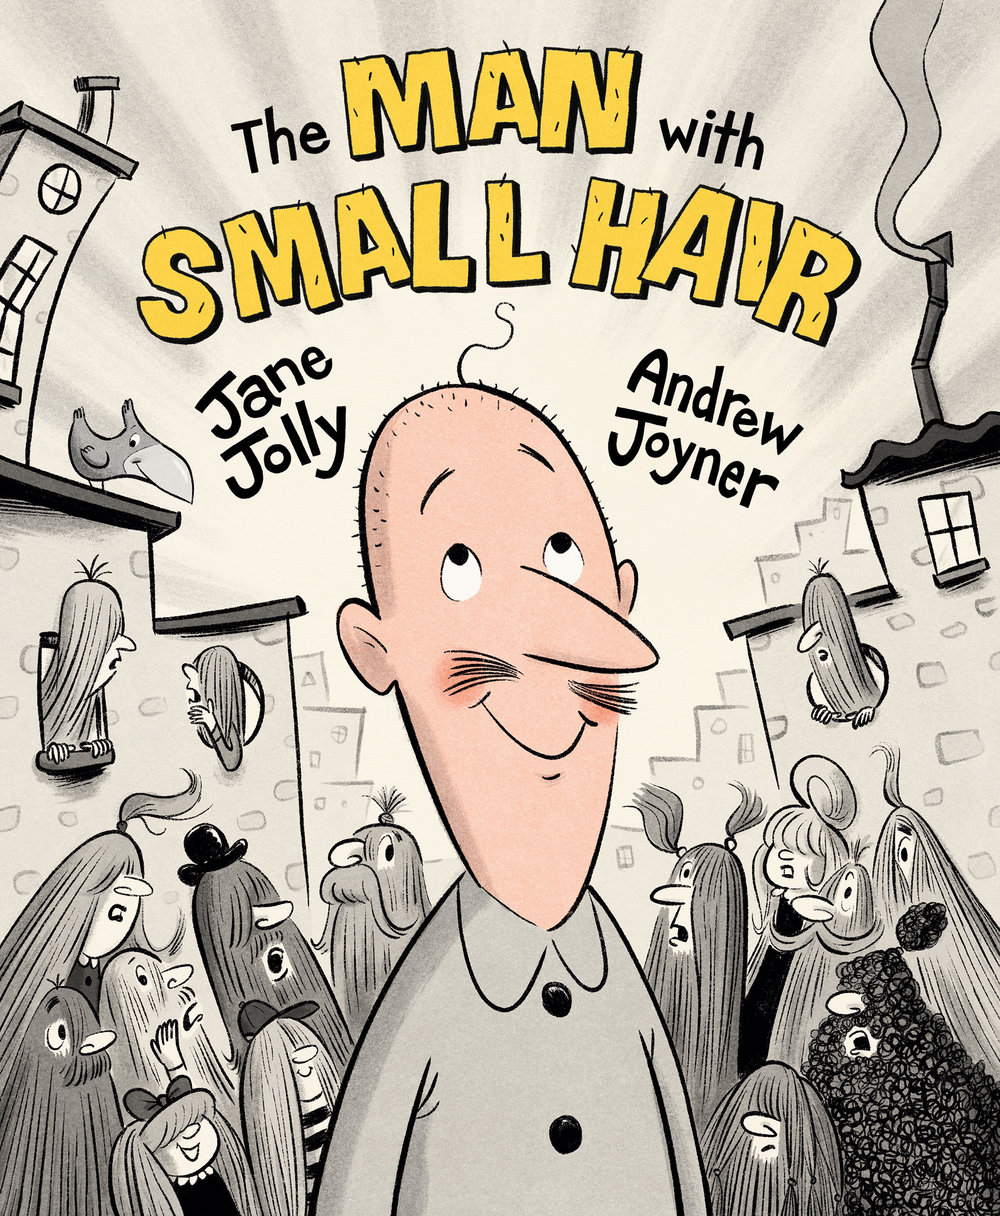 The man with small hair  by jane jolly